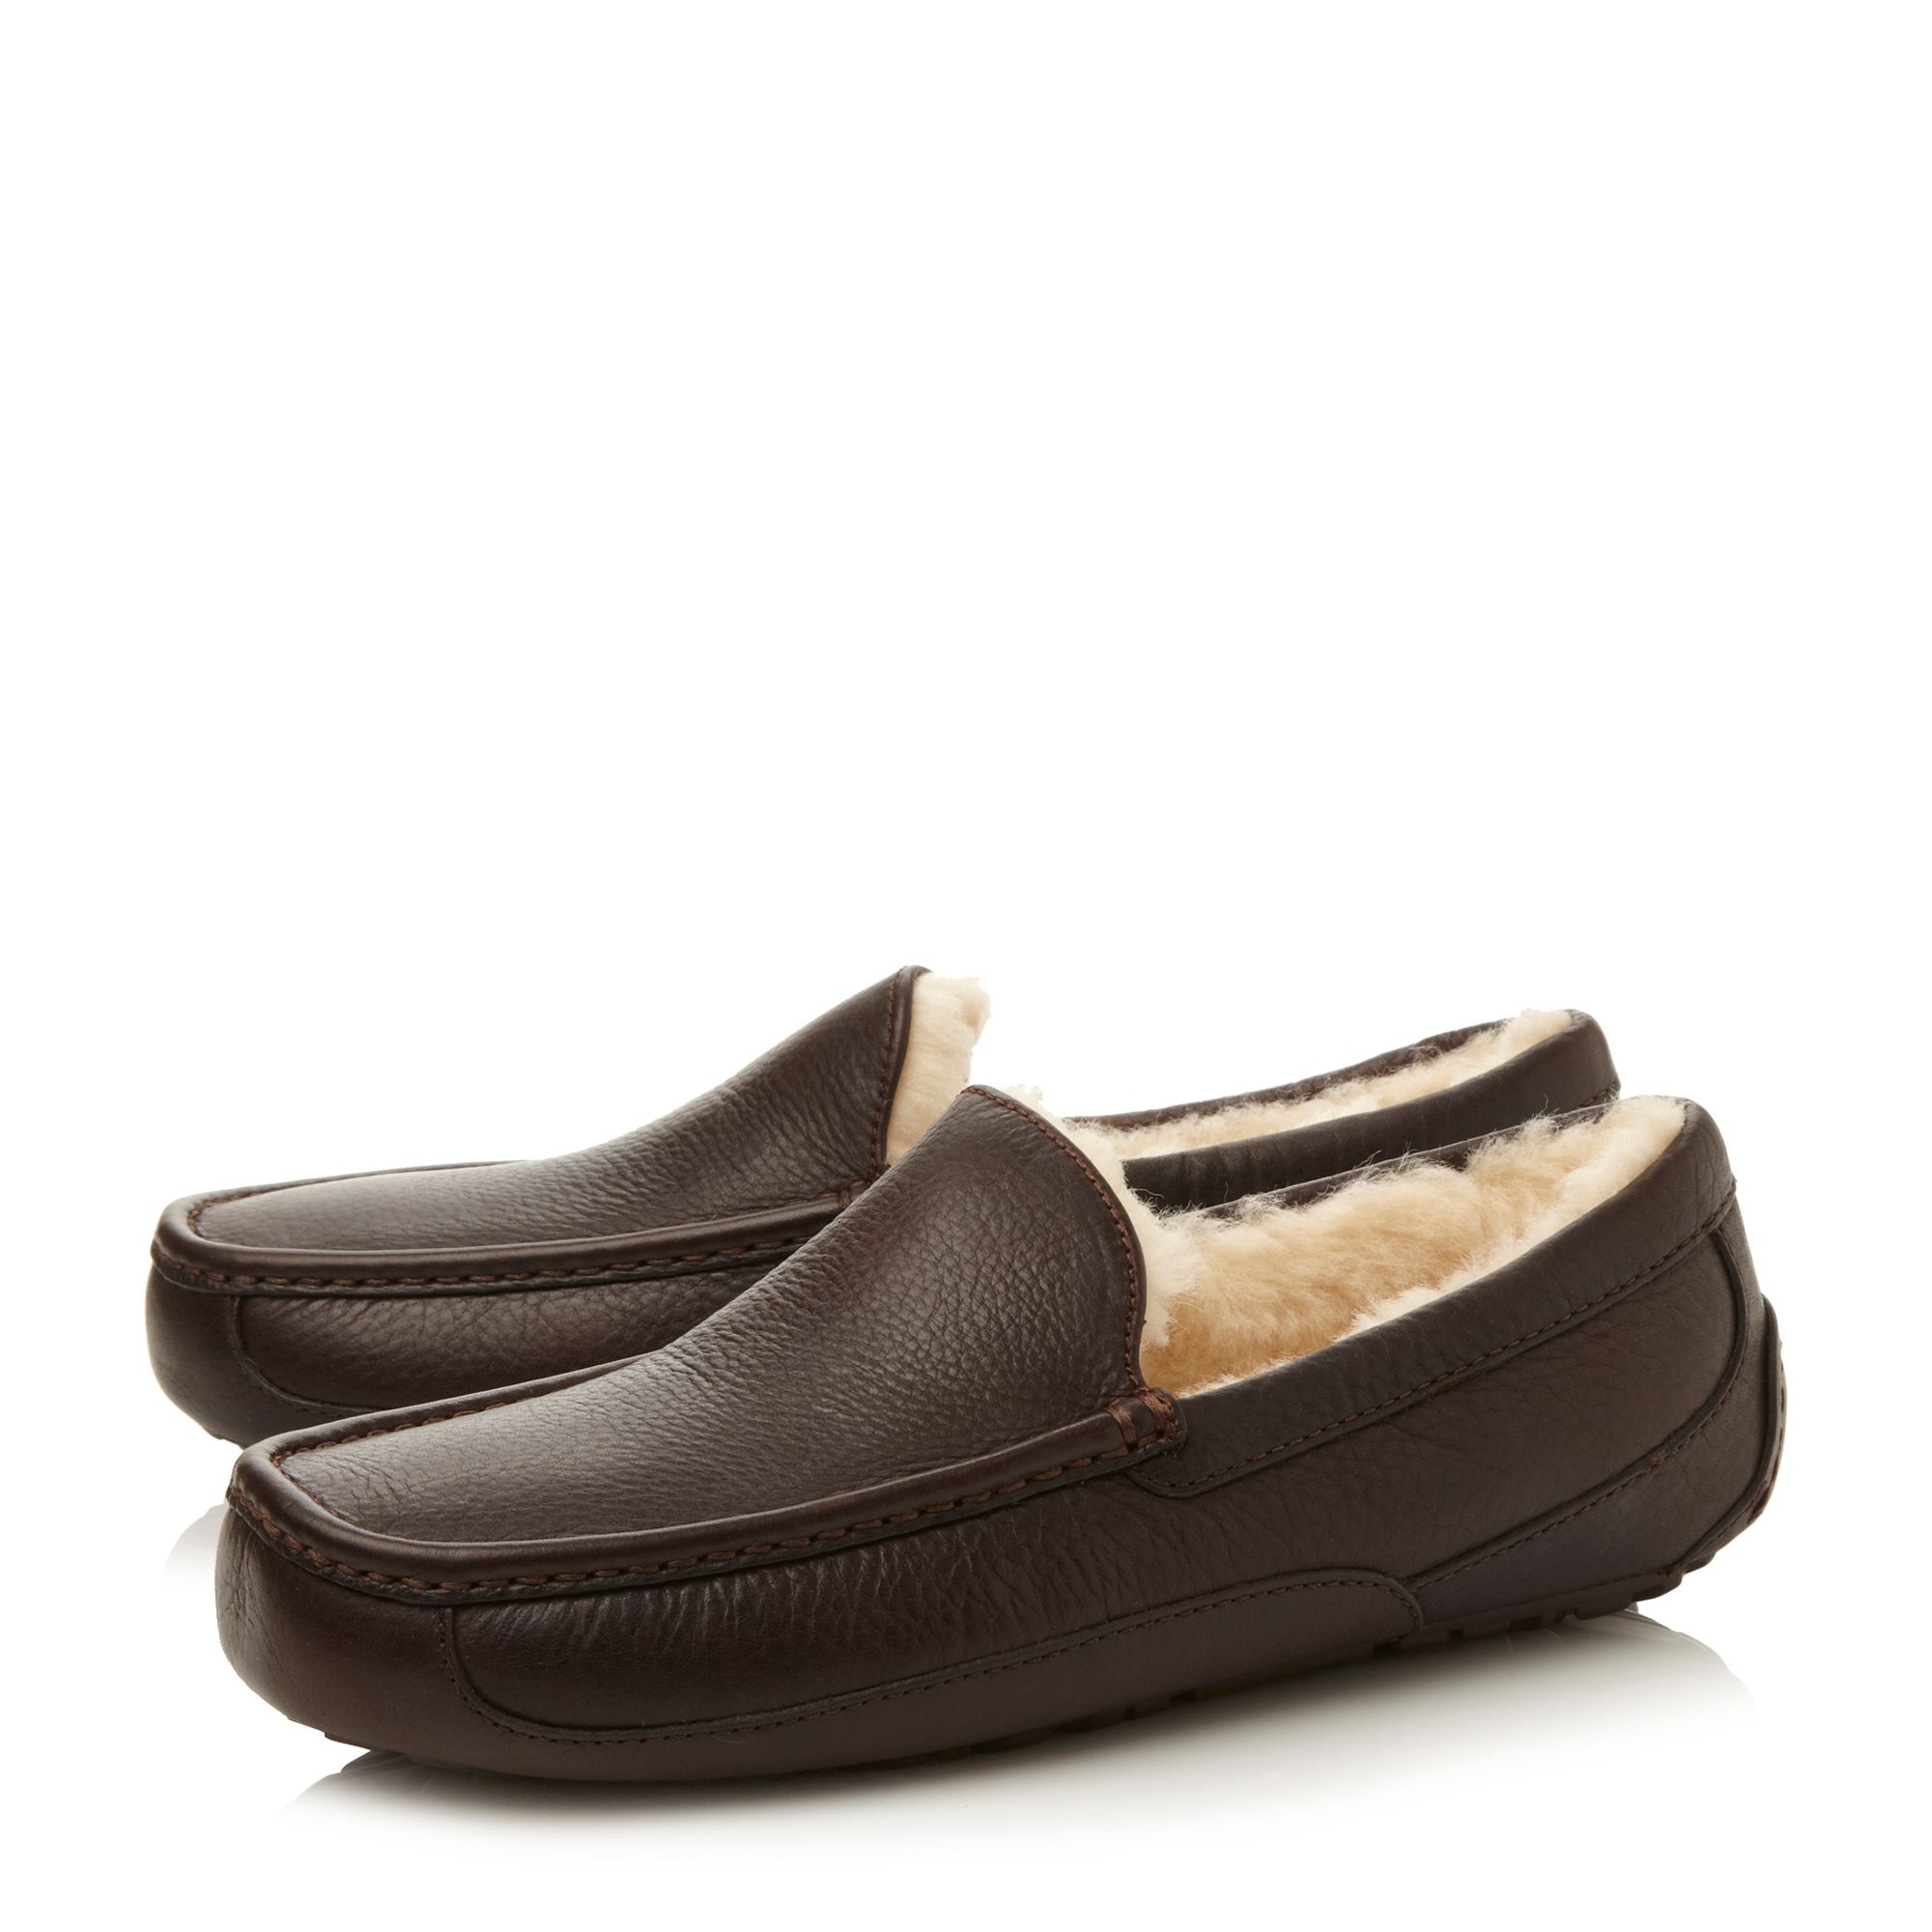 745038909c0 Ascot Ugg Slippers - cheap watches mgc-gas.com